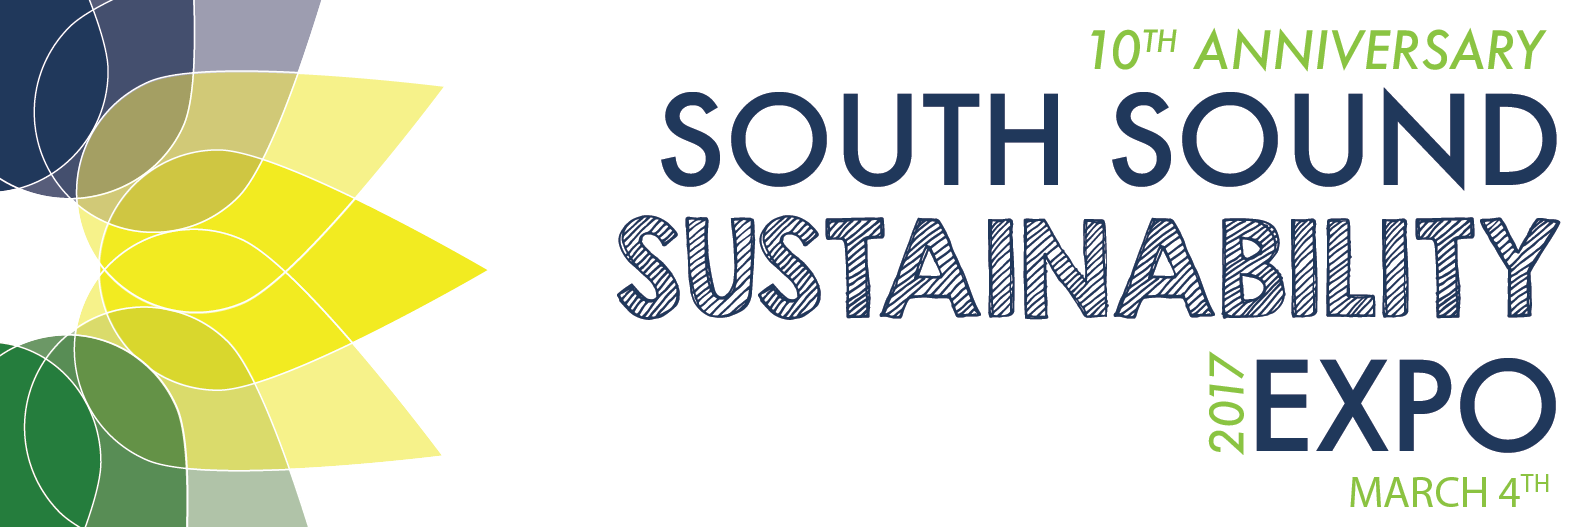 South Sound Sustainability Expo logo